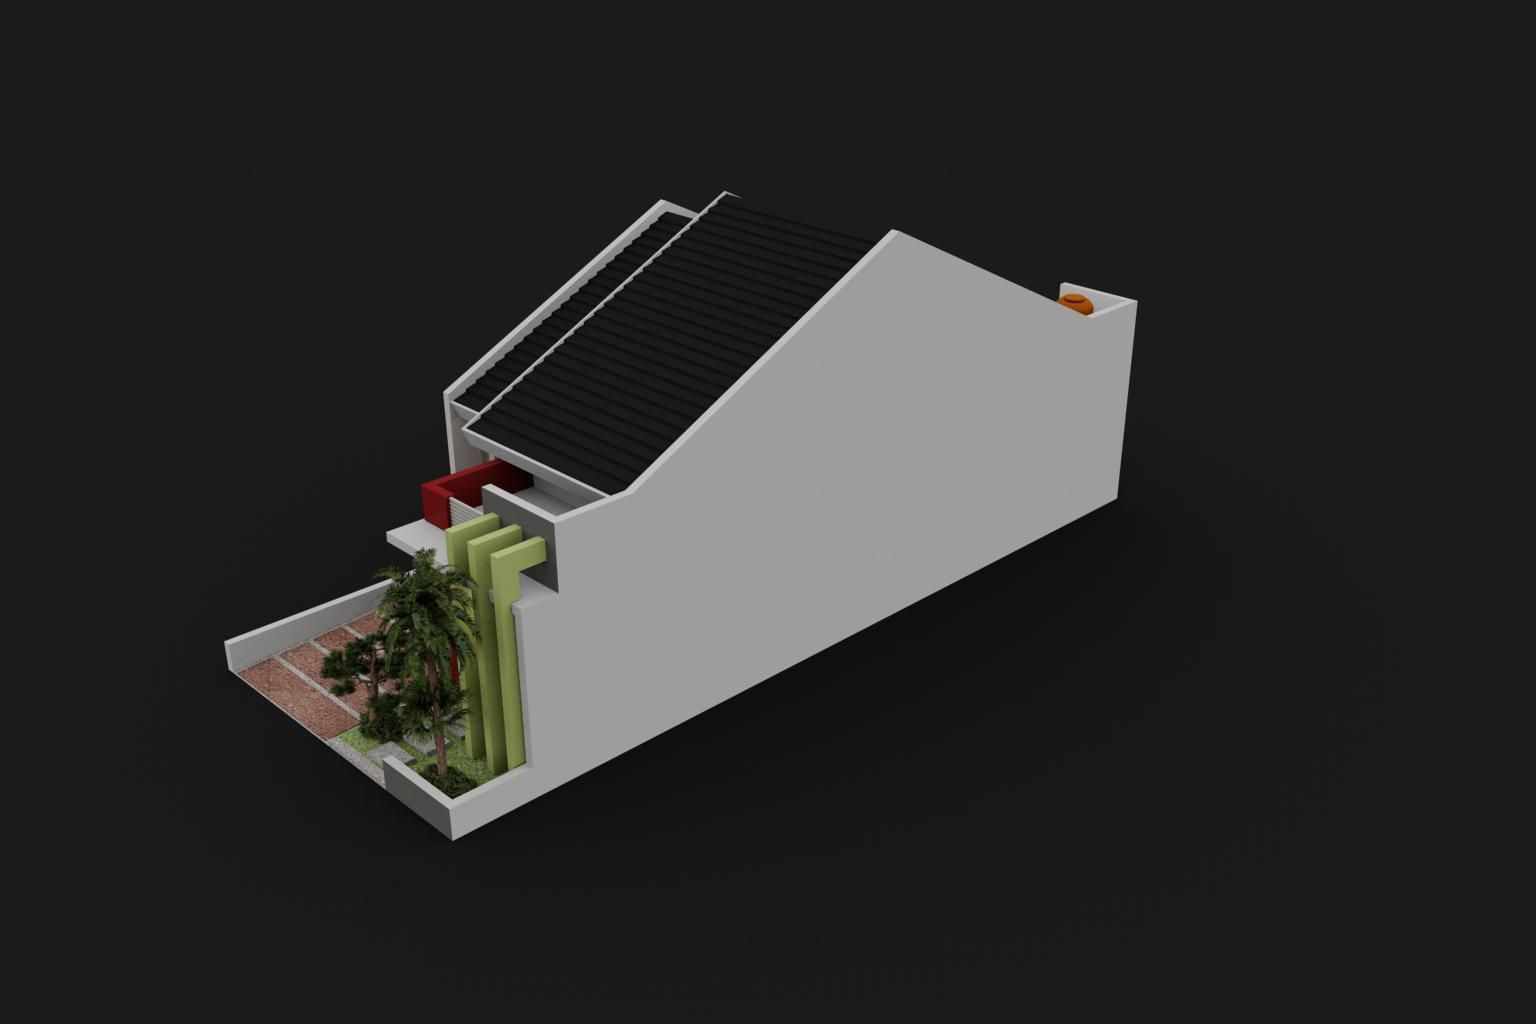 Small house design 3d model max for 3d decoration models